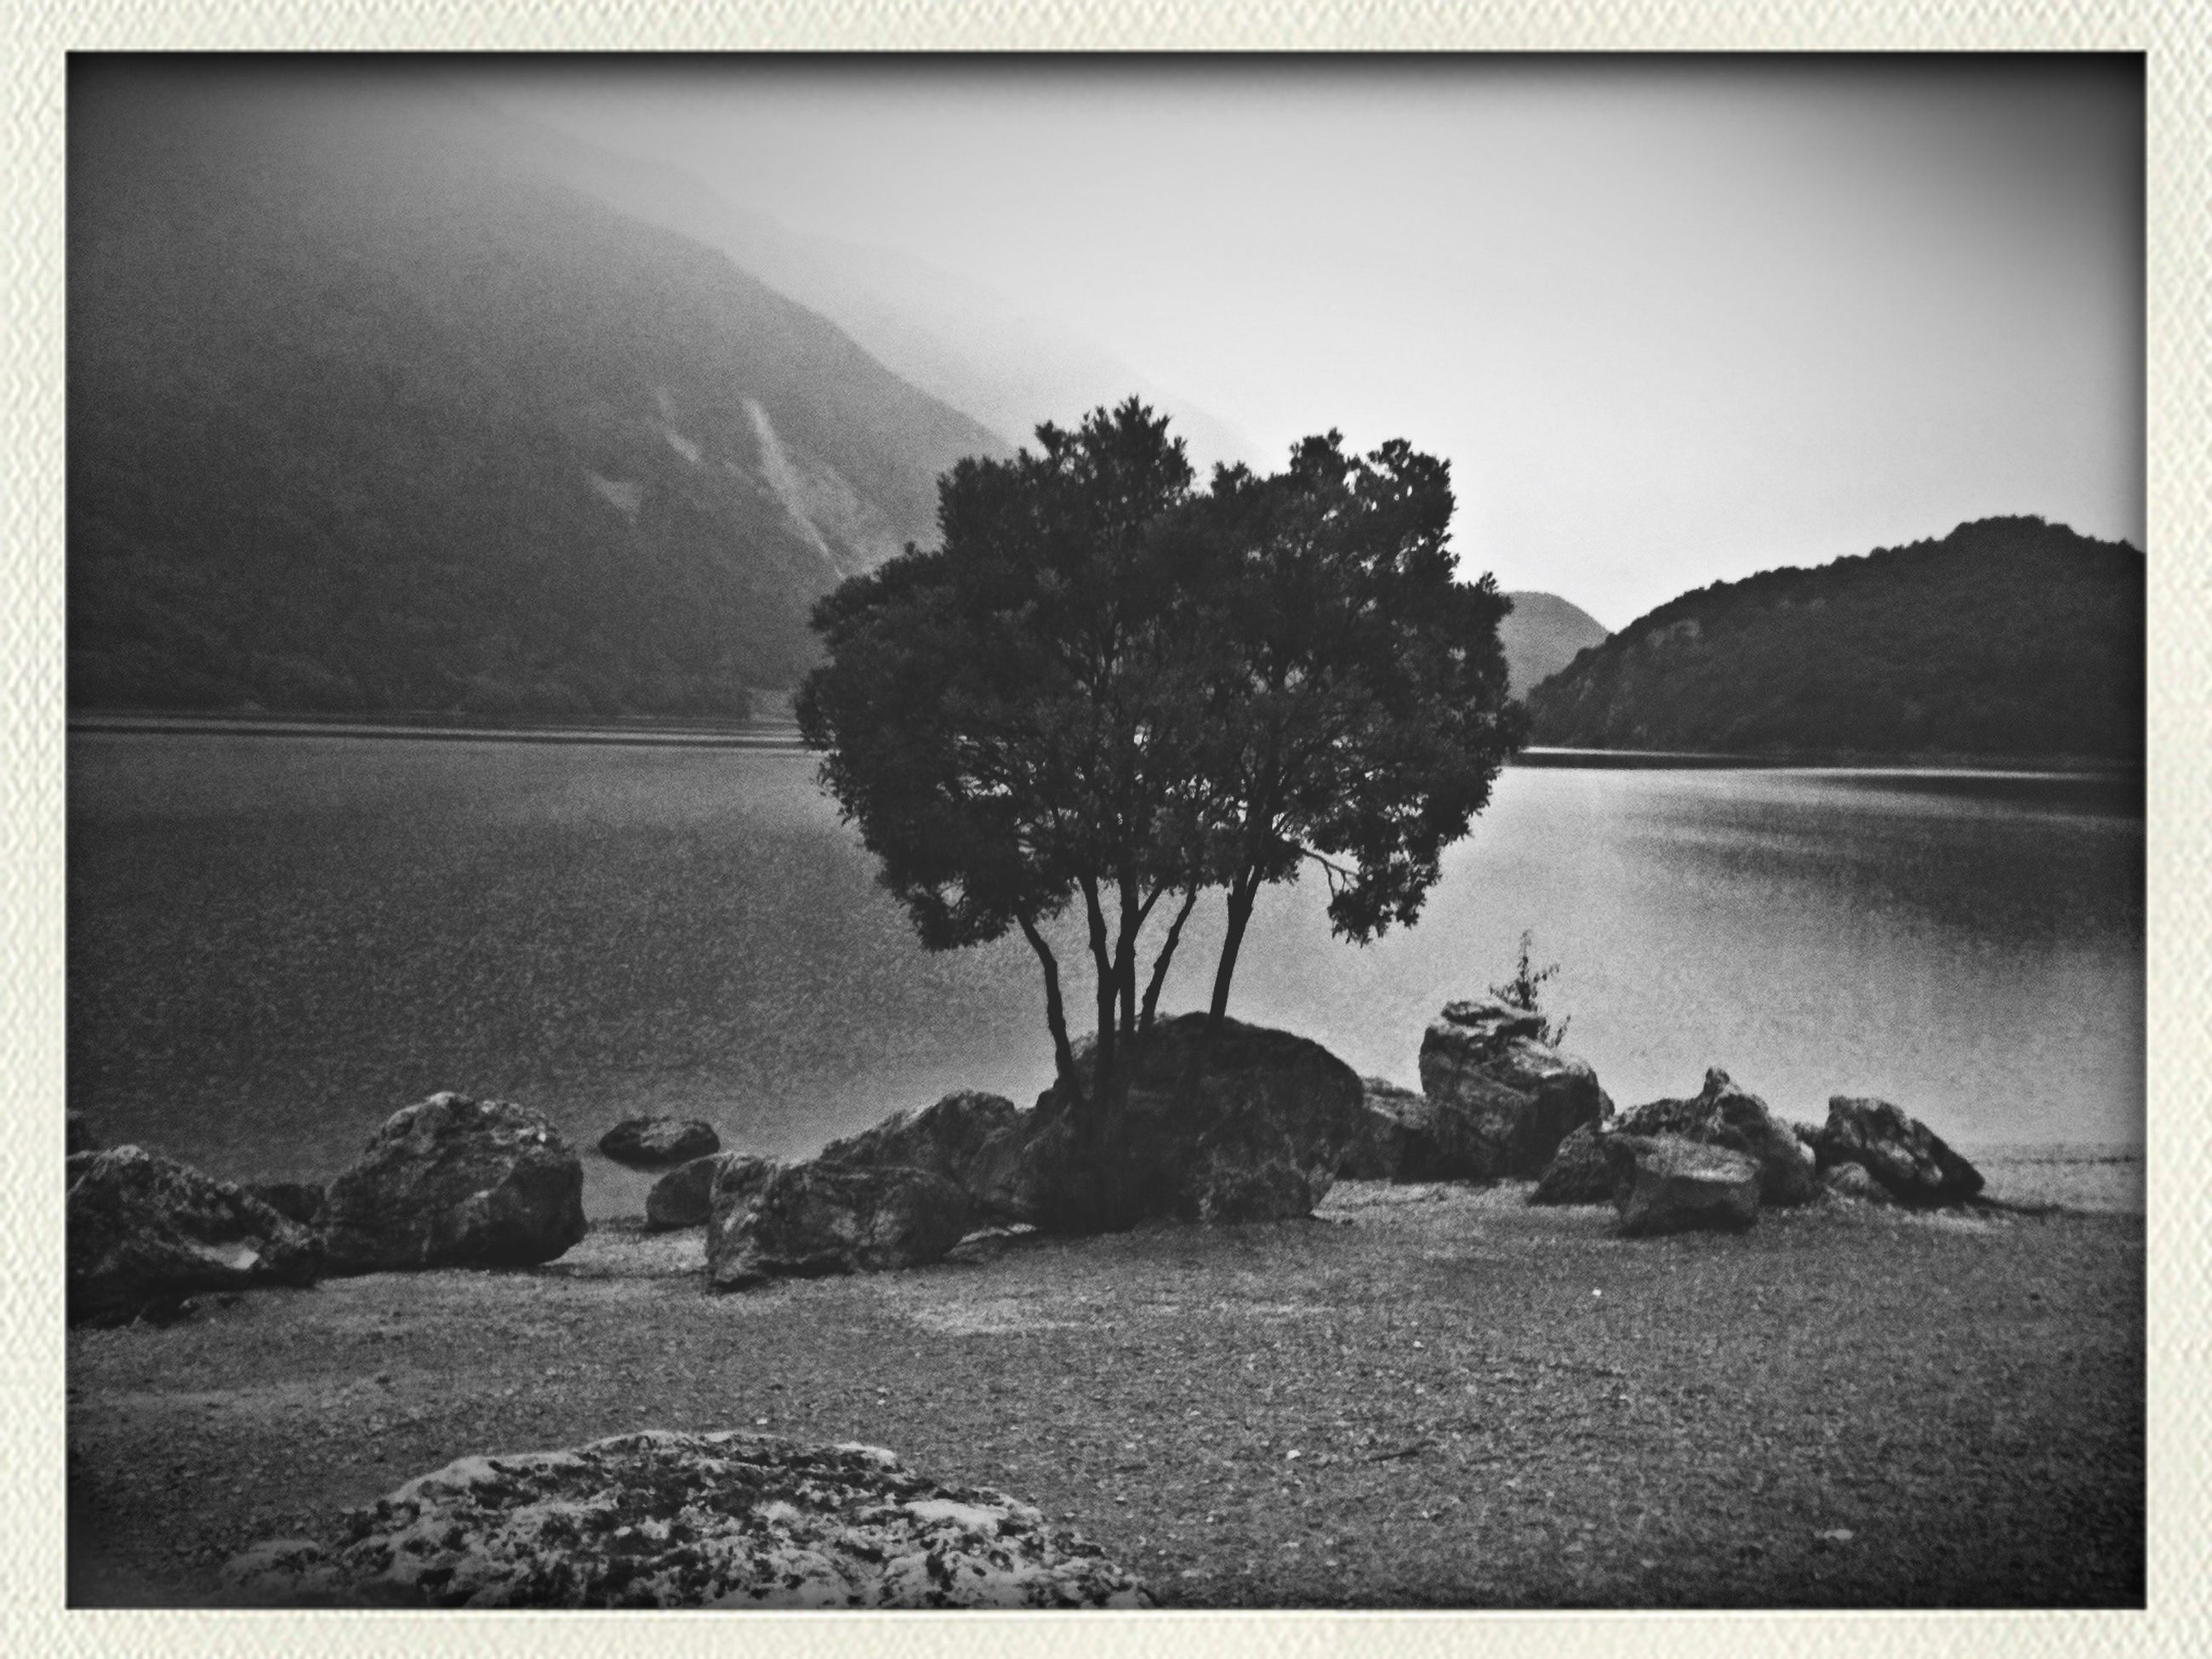 transfer print, water, auto post production filter, tranquility, tranquil scene, scenics, clear sky, tree, sea, nature, beauty in nature, rock - object, sky, mountain, reflection, beach, shore, silhouette, lake, idyllic